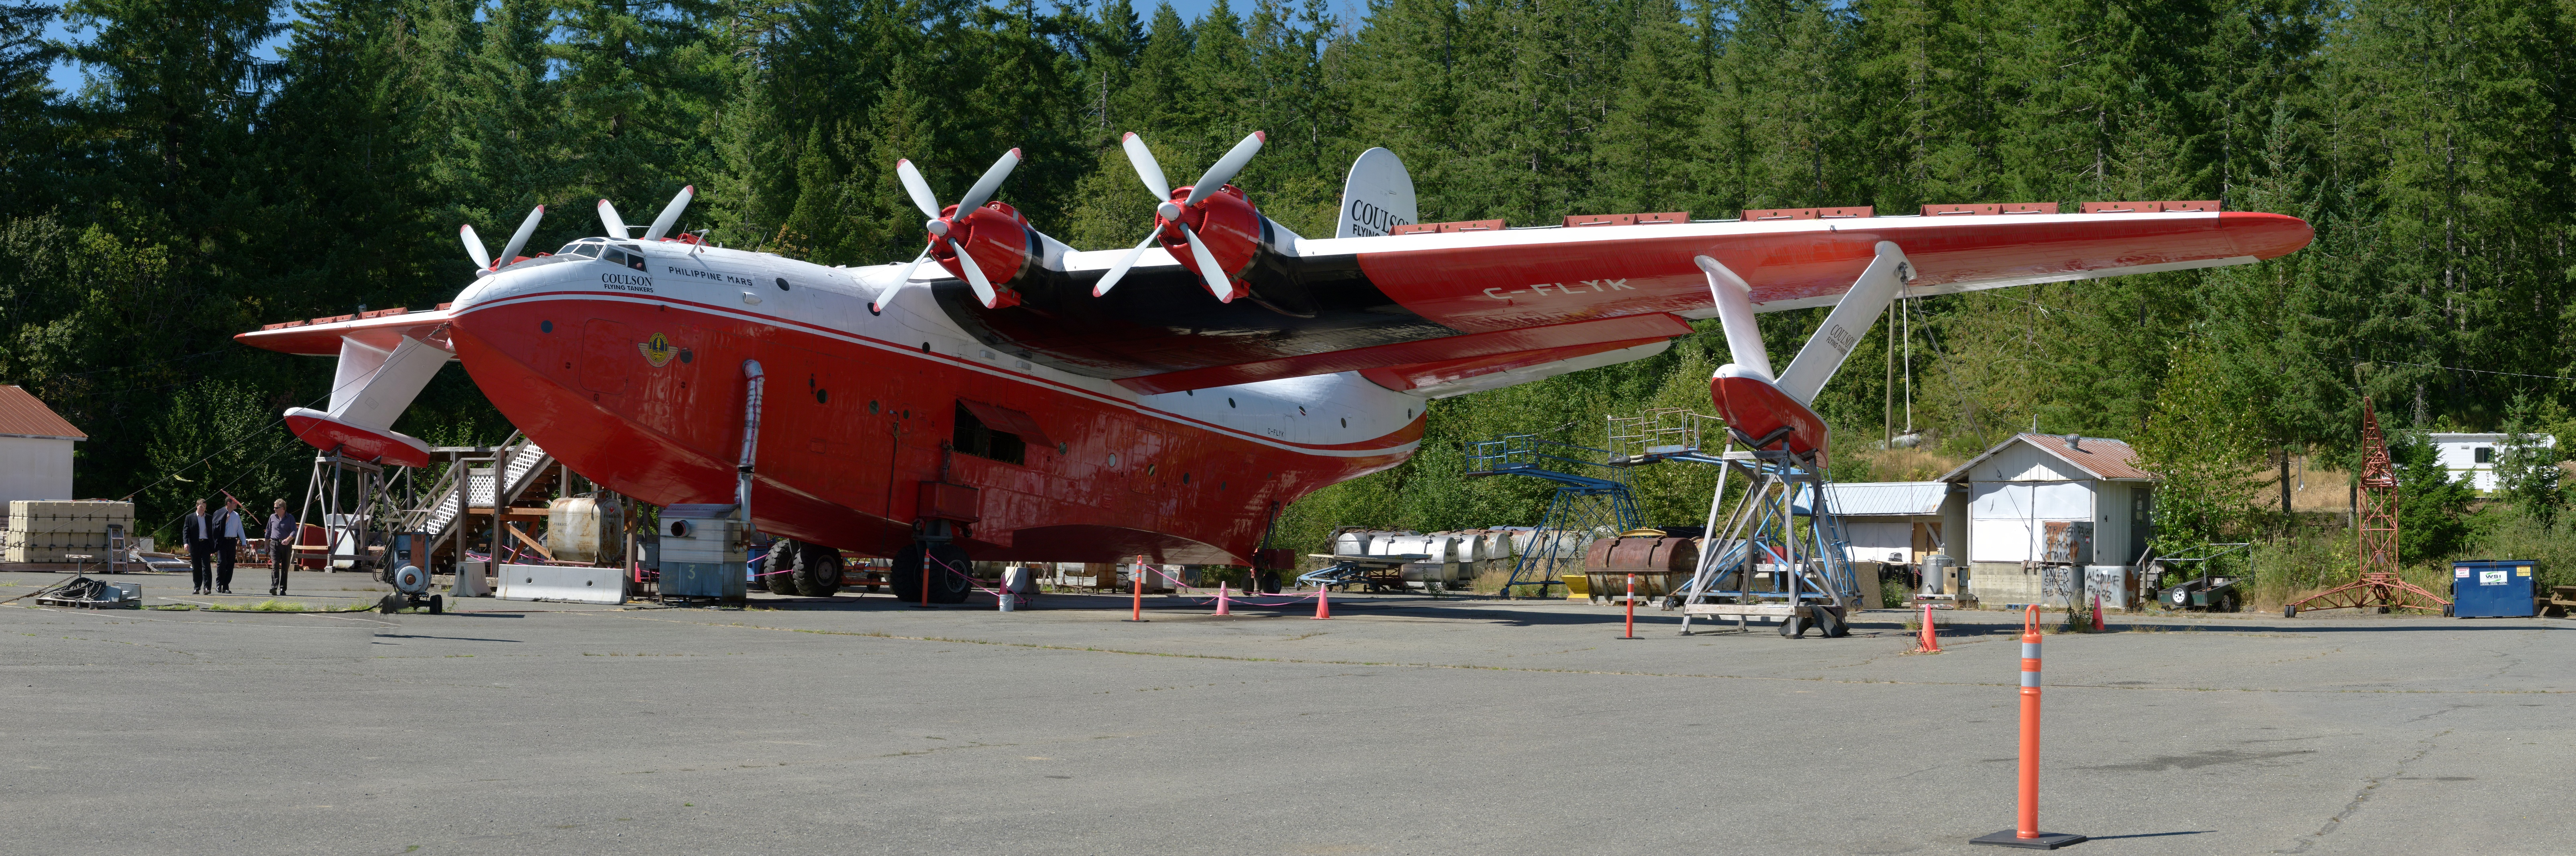 Martin Mars...worlds largest flying boat